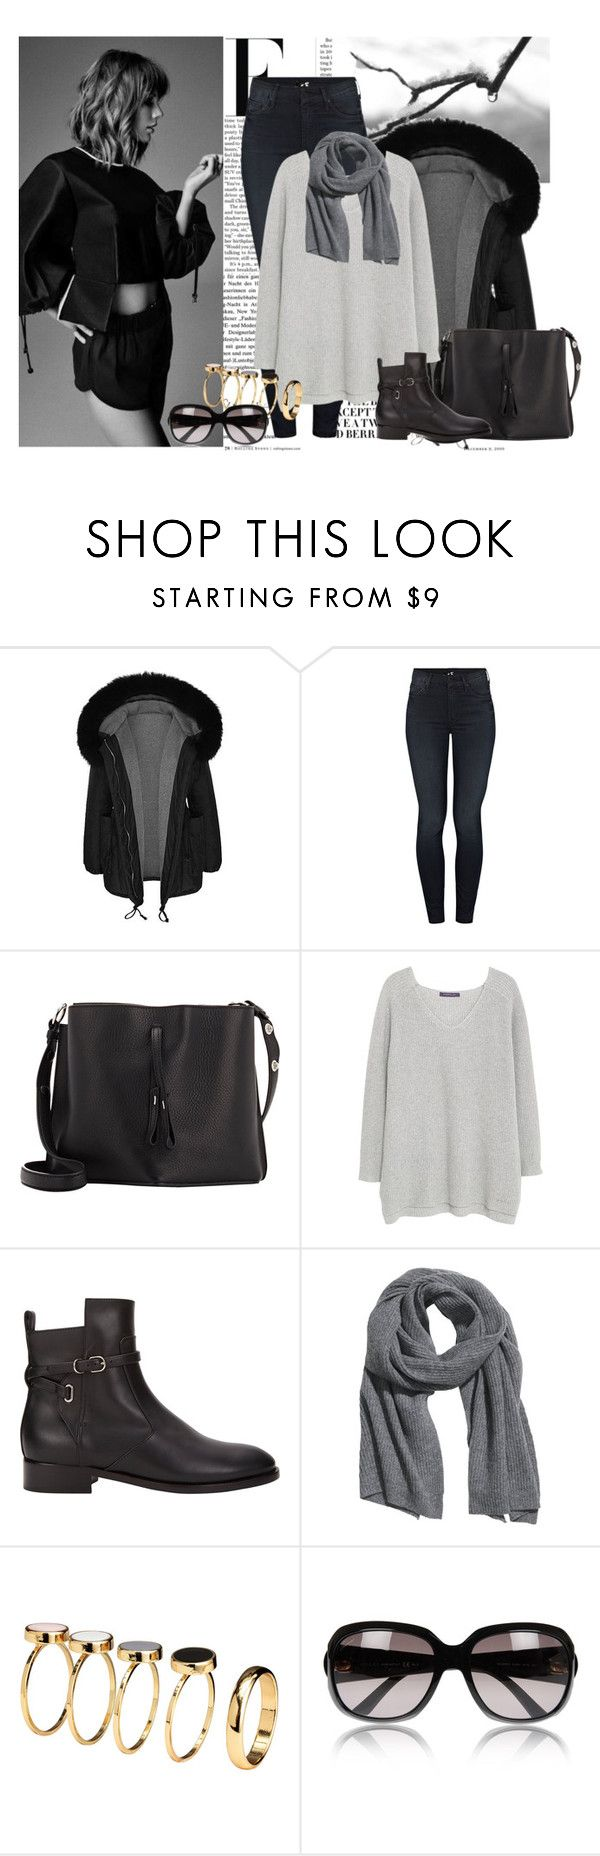 """I remember"" by ninotchka-nb ❤ liked on Polyvore featuring Nicki Minaj, Mother, Maison Margiela, Violeta by Mango, Balenciaga, H&M and Gucci"